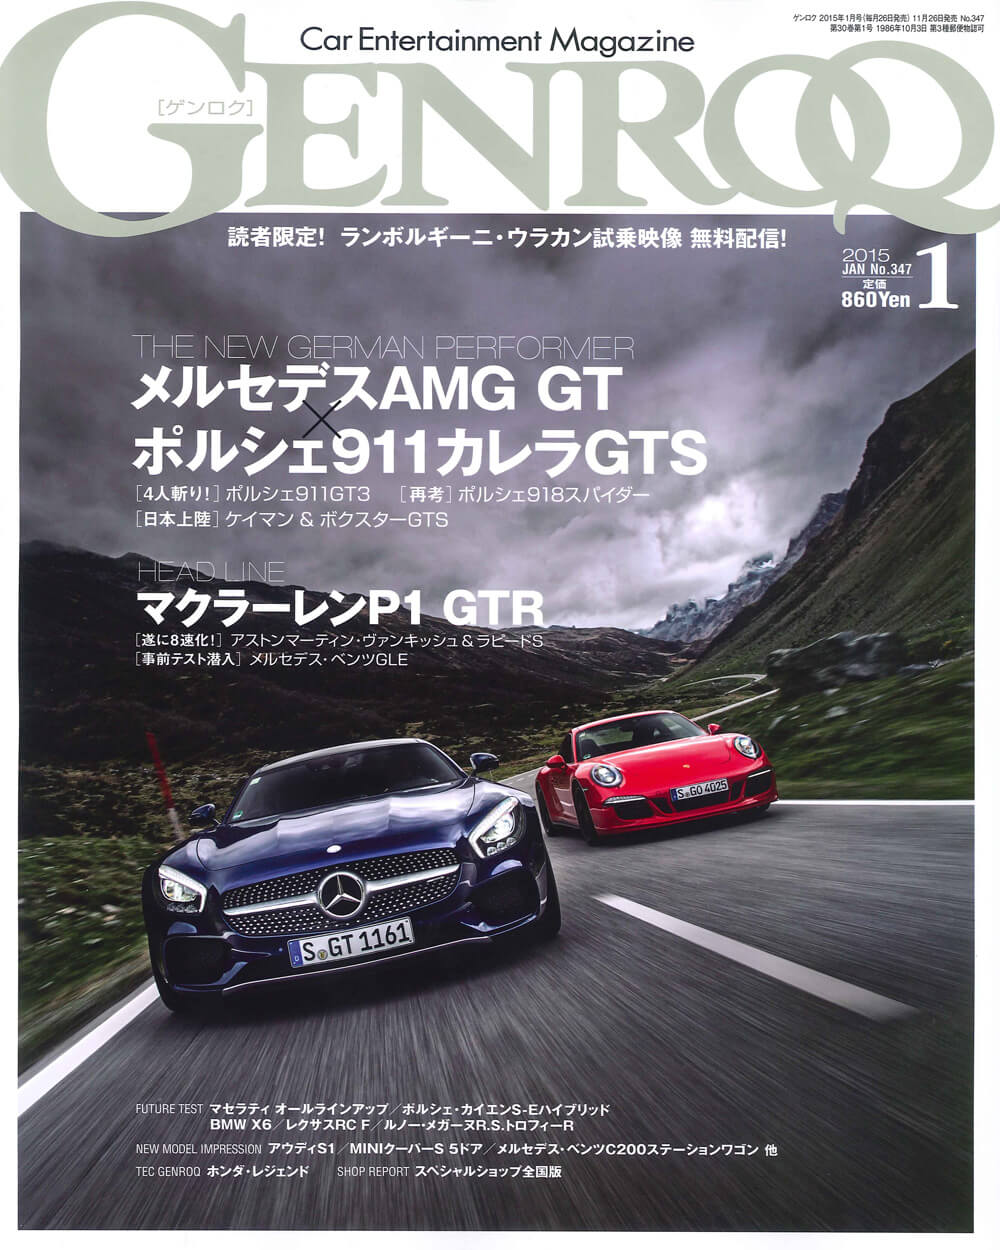 GENROQ Jan. issue